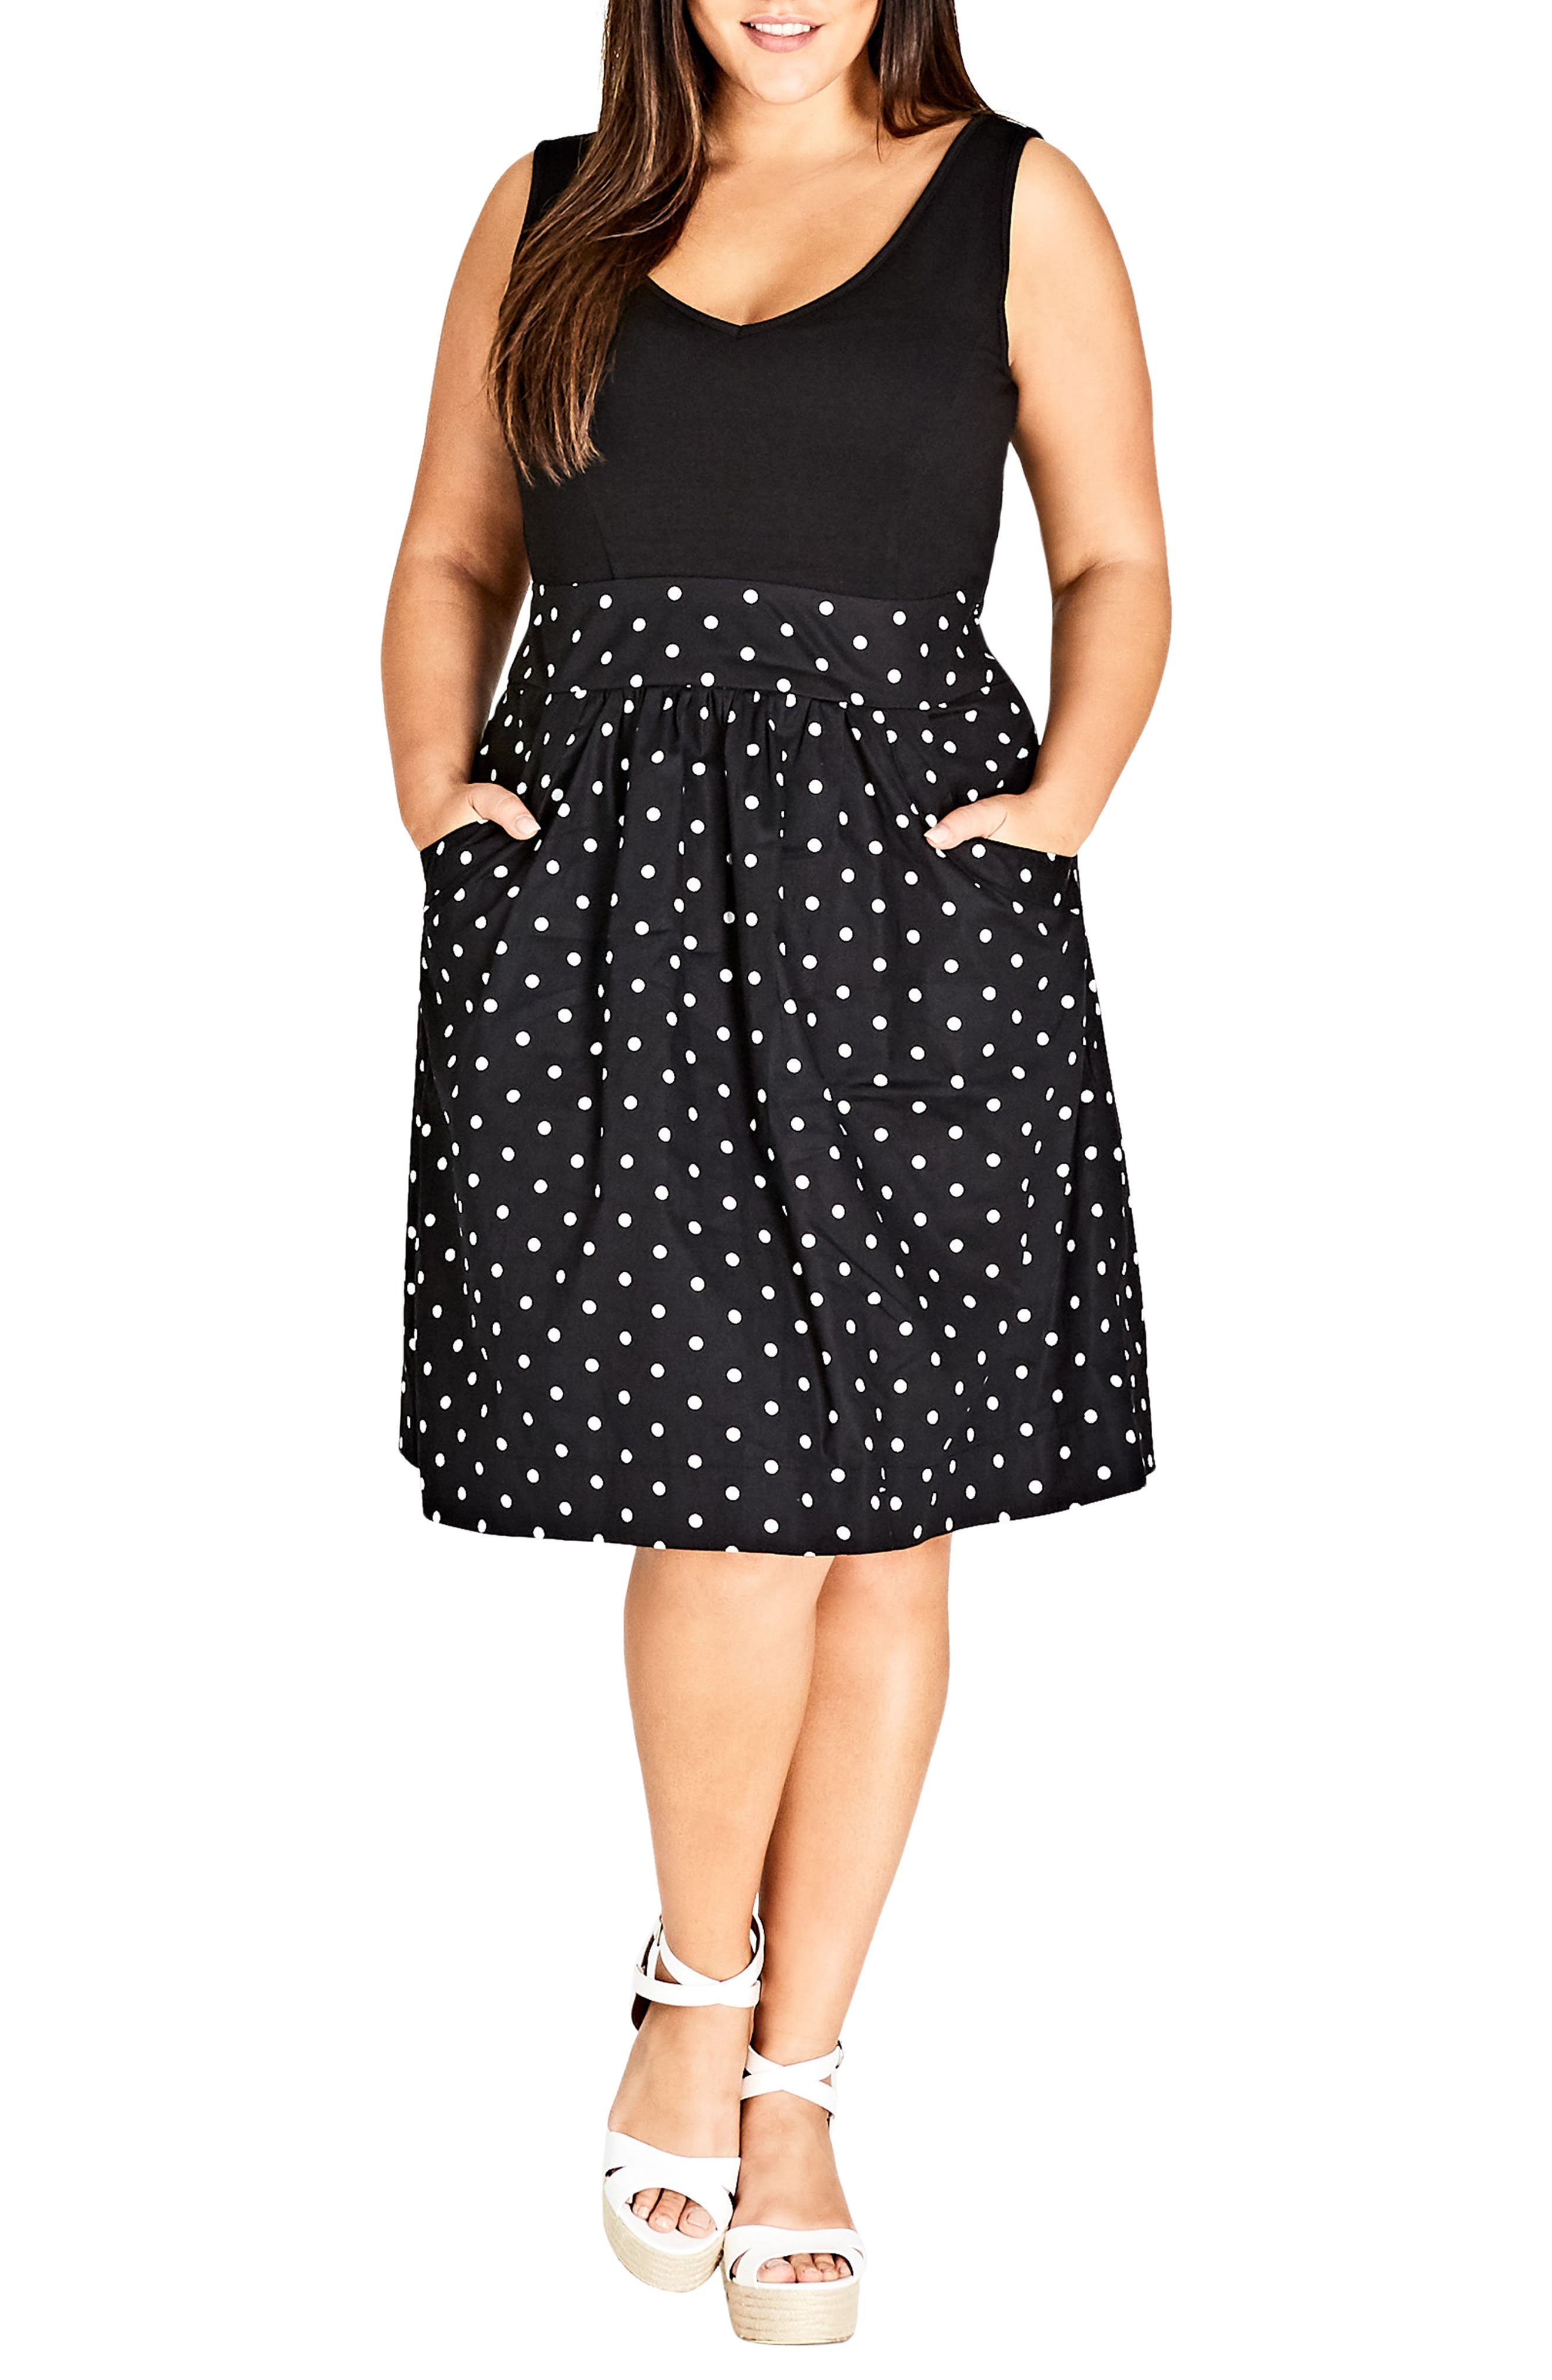 Simply Sweet Fit & Flare Dress,                         Main,                         color, Sweet Spot